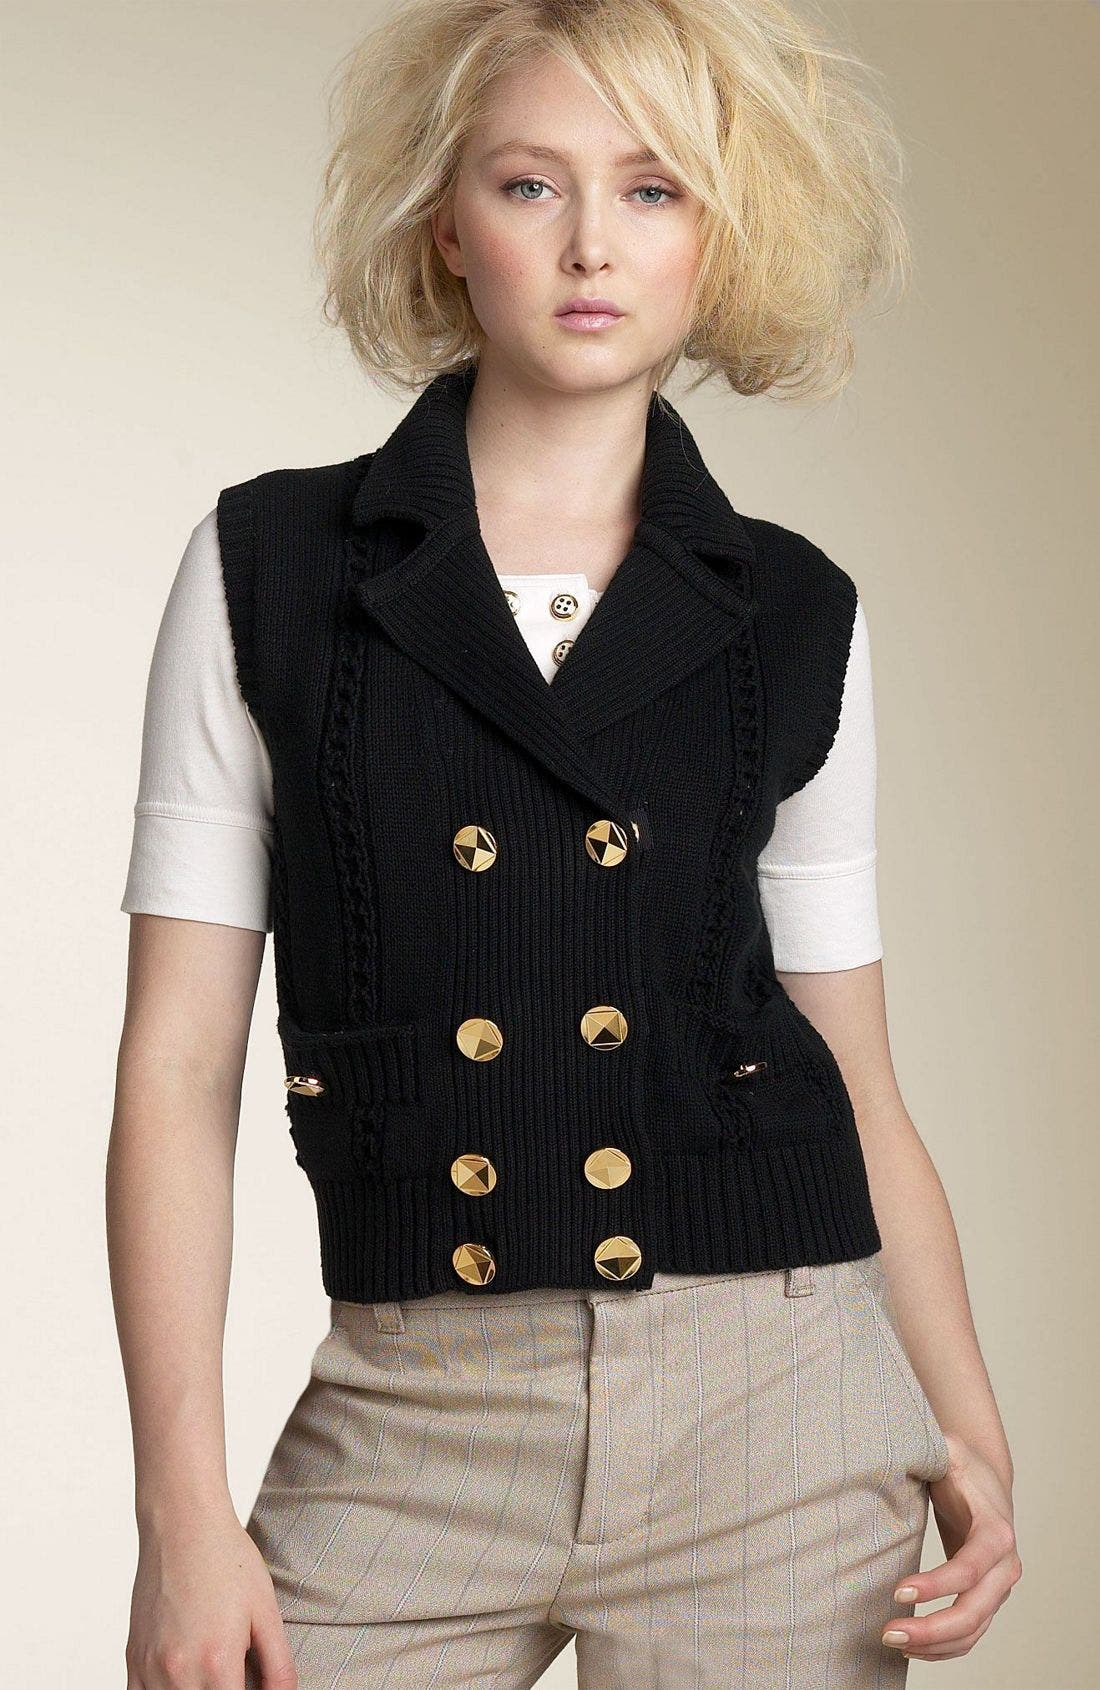 Alternate Image 1 Selected - MARC BY MARC JACOBS 'Gladys' Sweater Vest